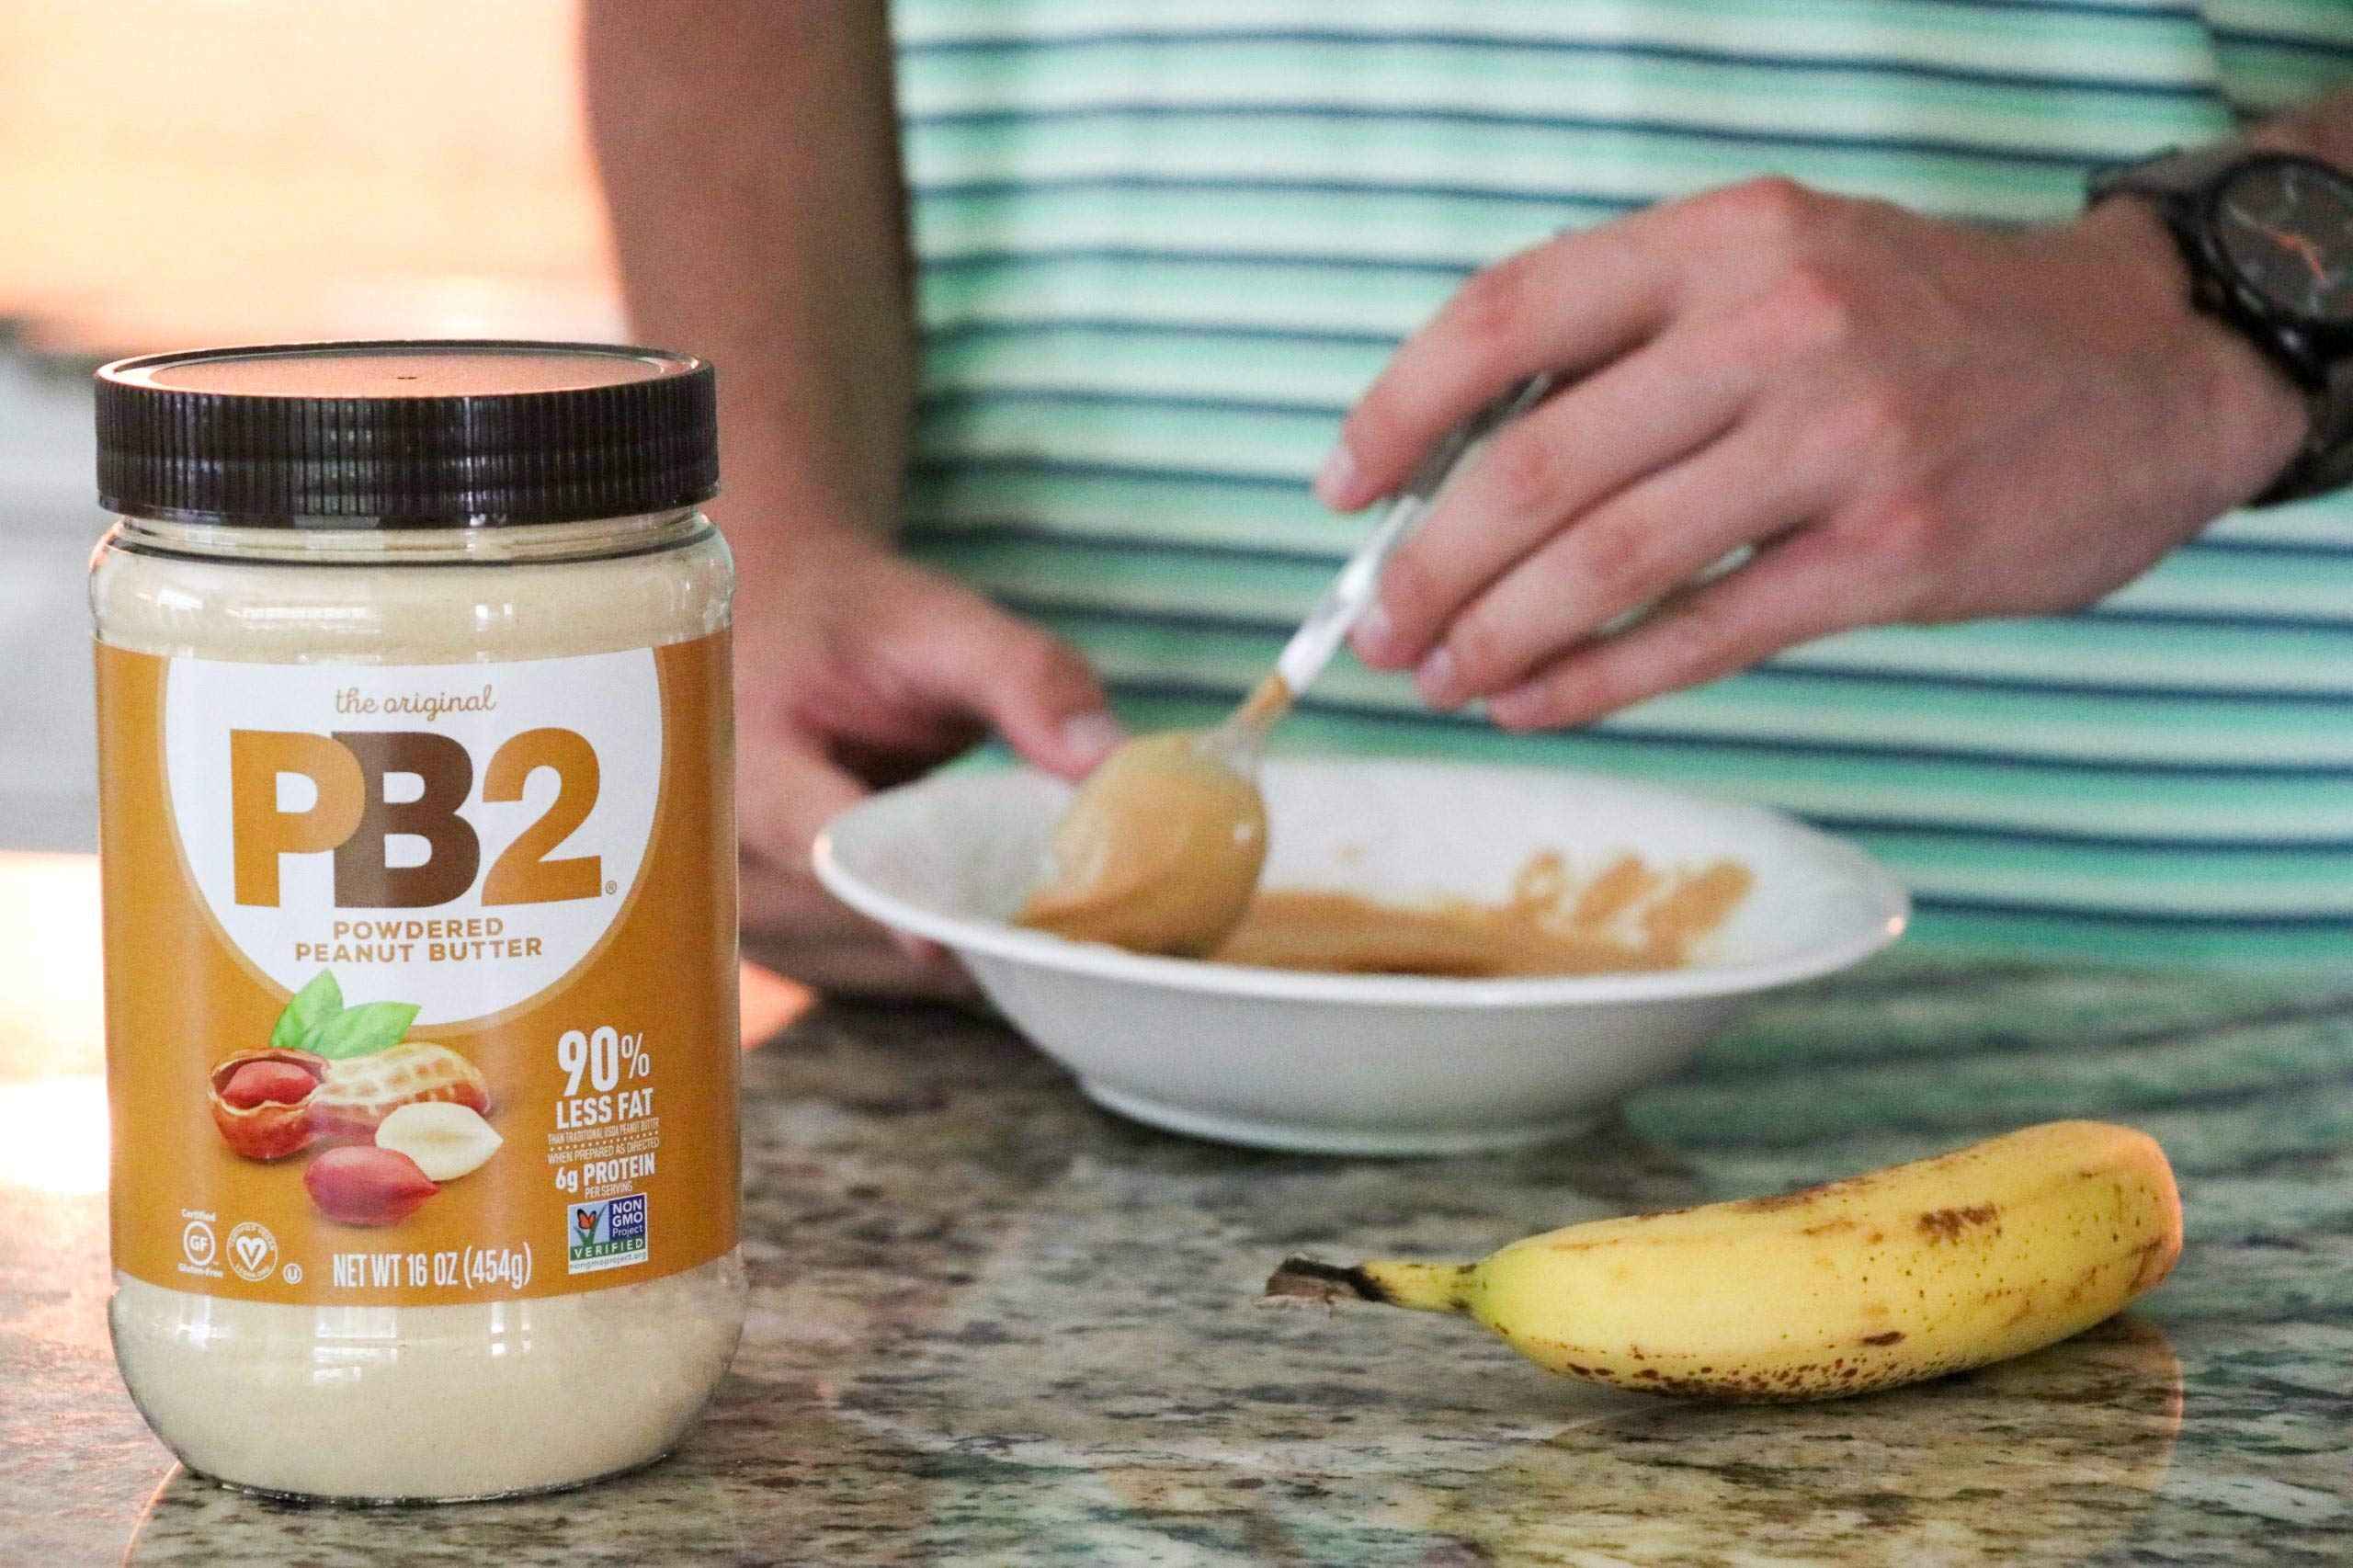 PB2 Original Powdered Peanut Butter - [1 Lb/16oz Jar] 6g of Protein, 90% Less Fat, Certified Gluten Free, Only 60 Calories per Serving, Perfect for Protein Shakes, Smoothies, and Low-Carb, Keto Diets